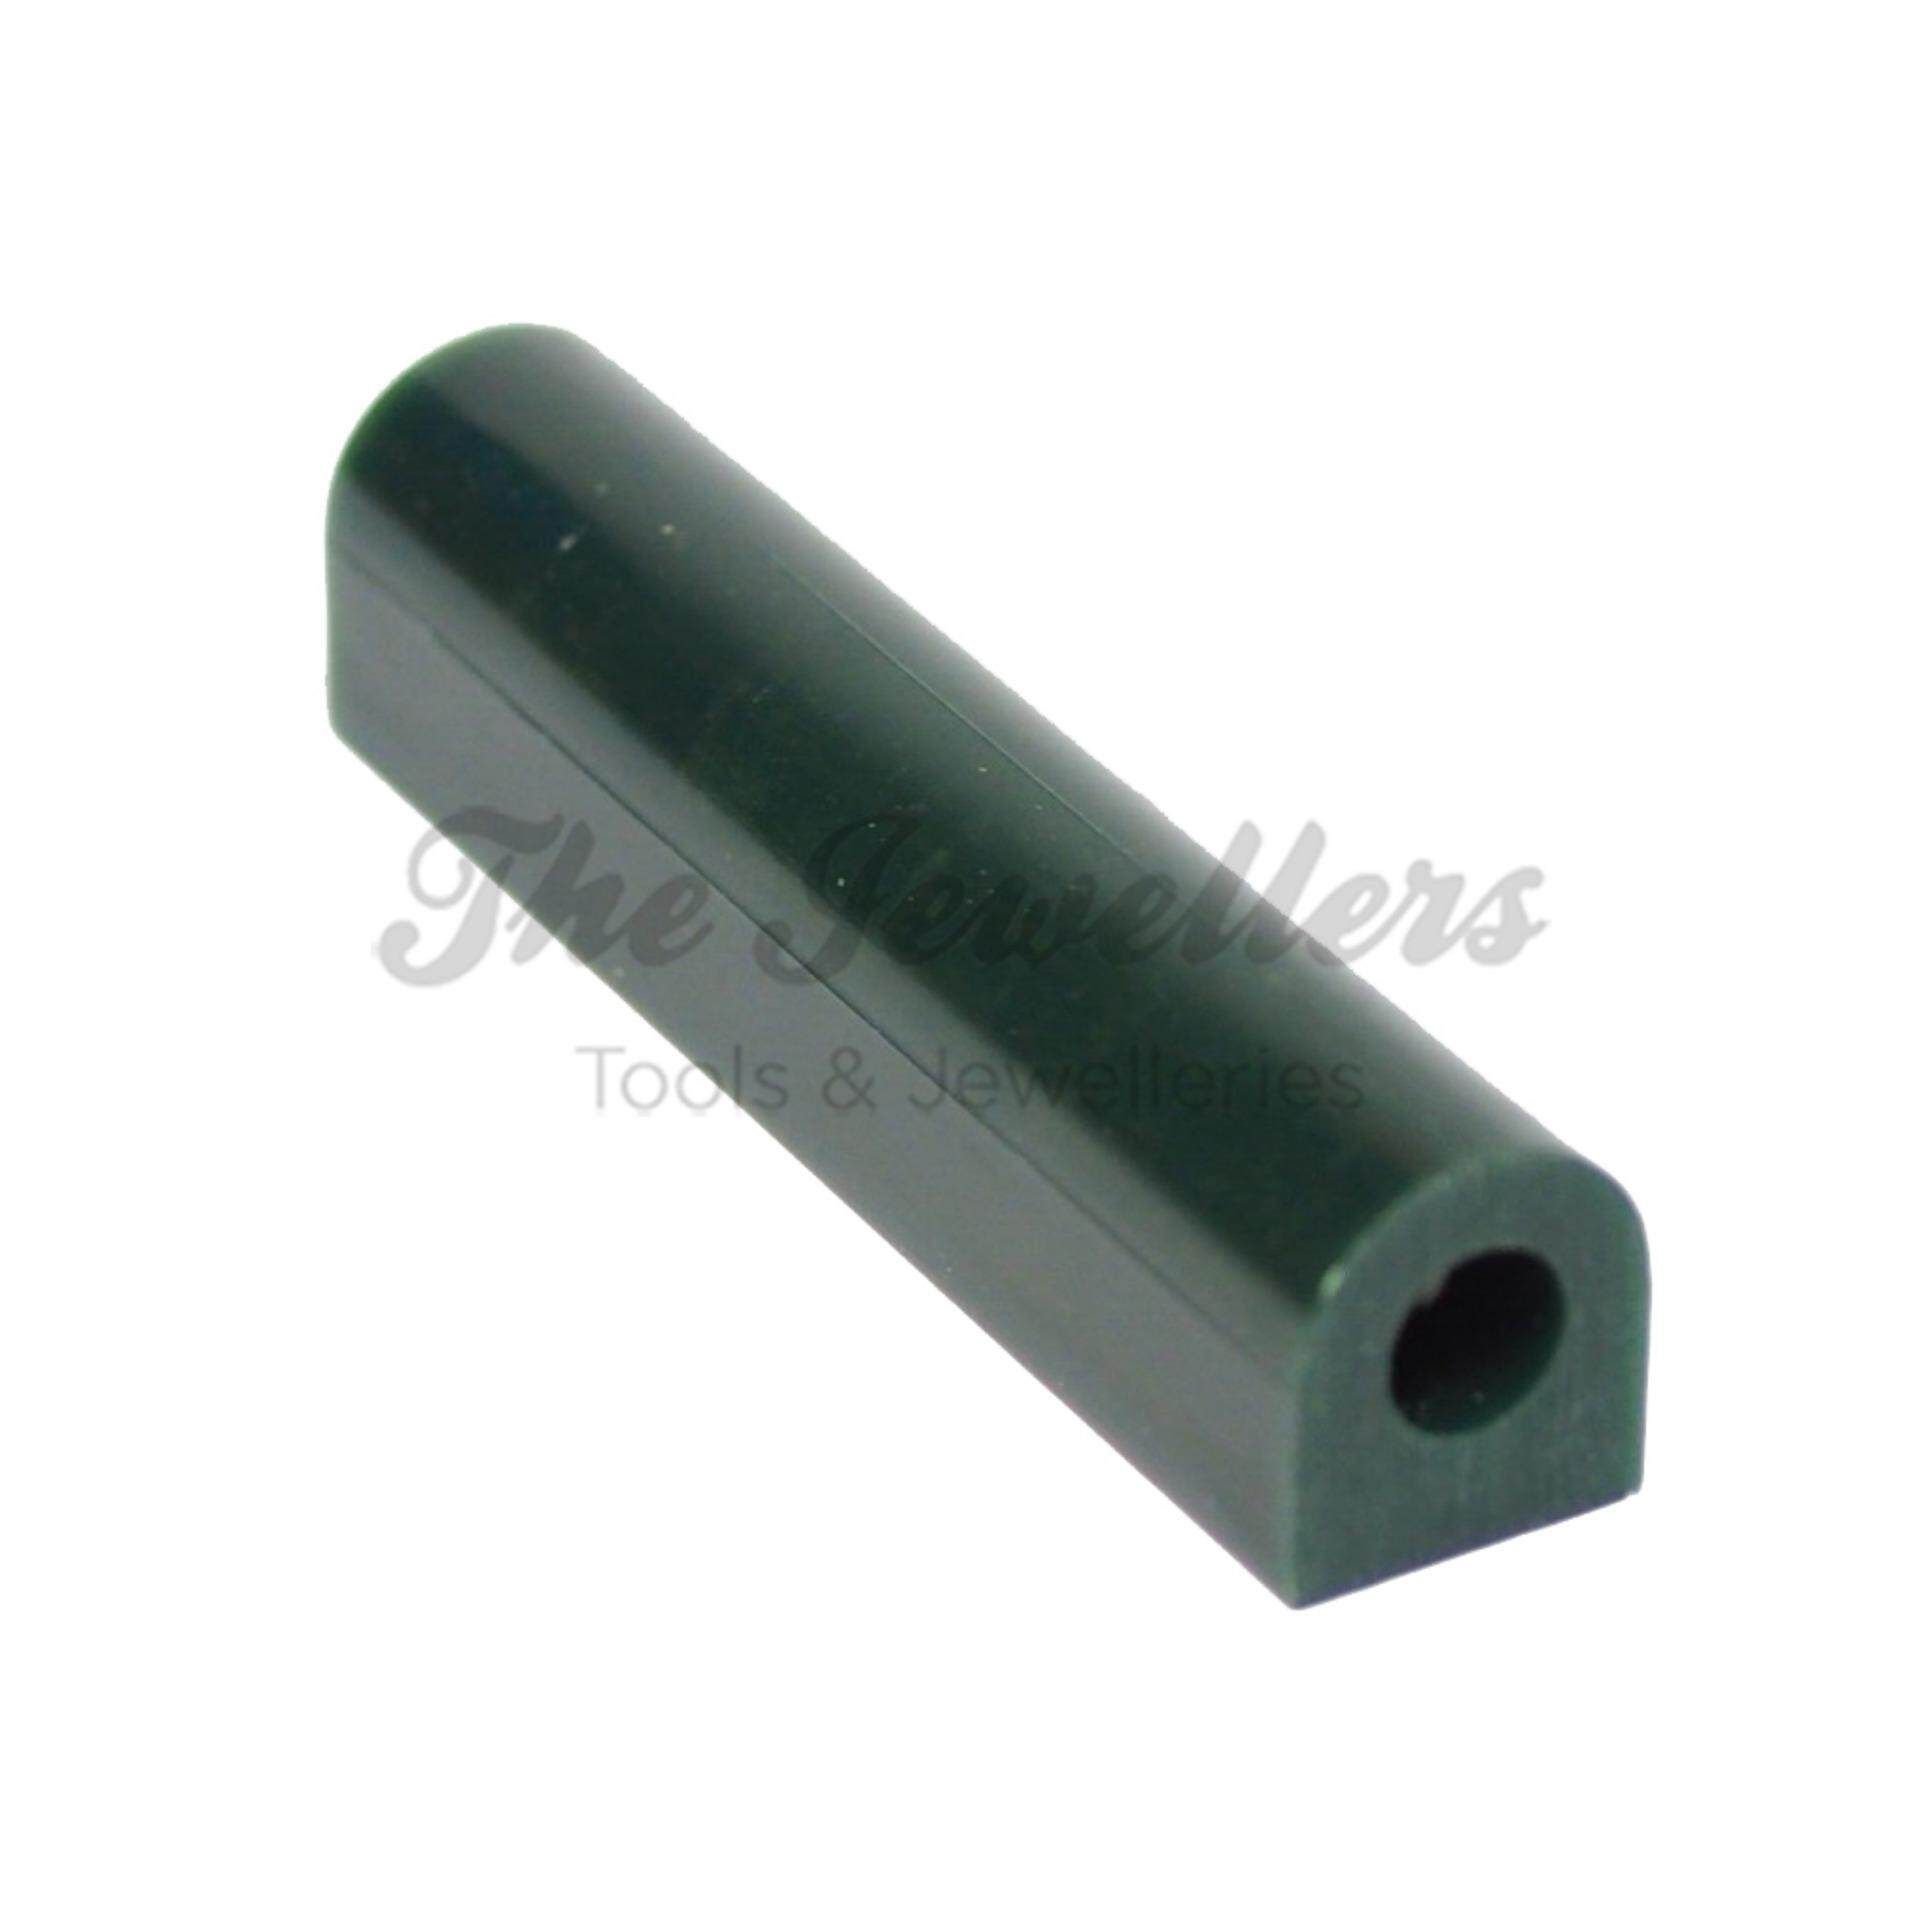 Ferris T200 Wax Ring Tube(Green) for Ring Casting